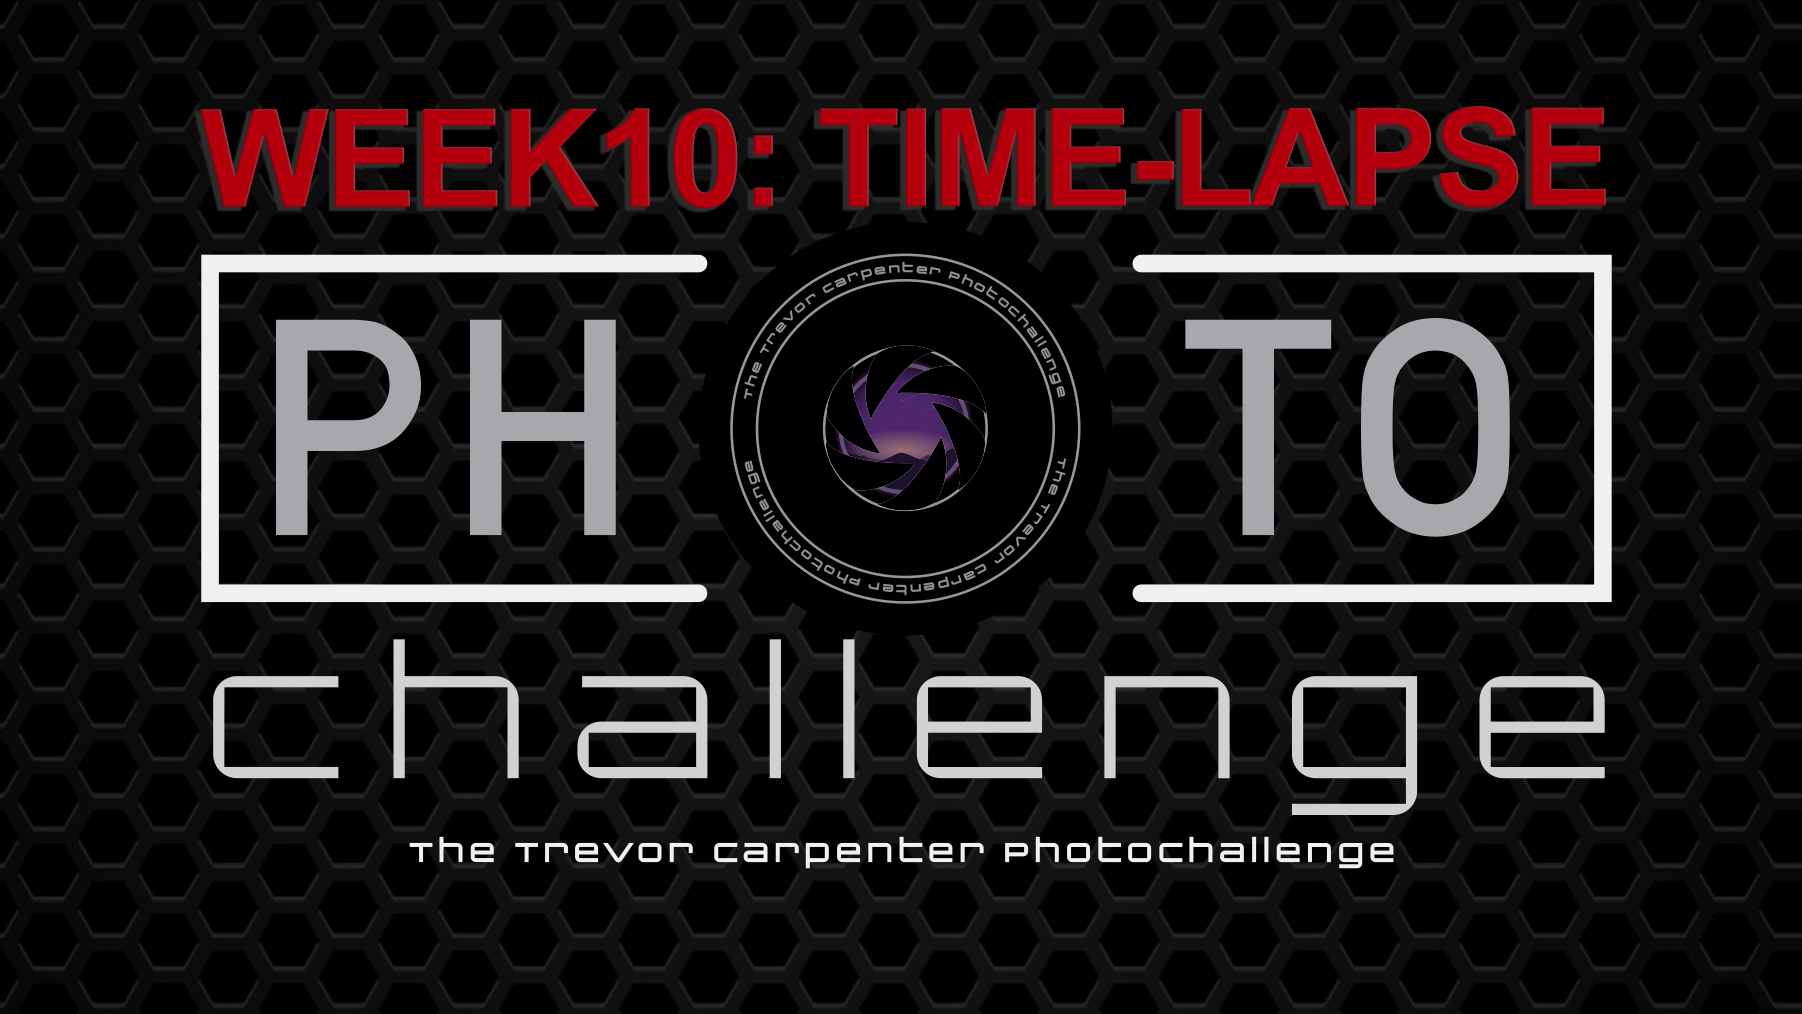 WEEK 10 Time-Lapse Photography